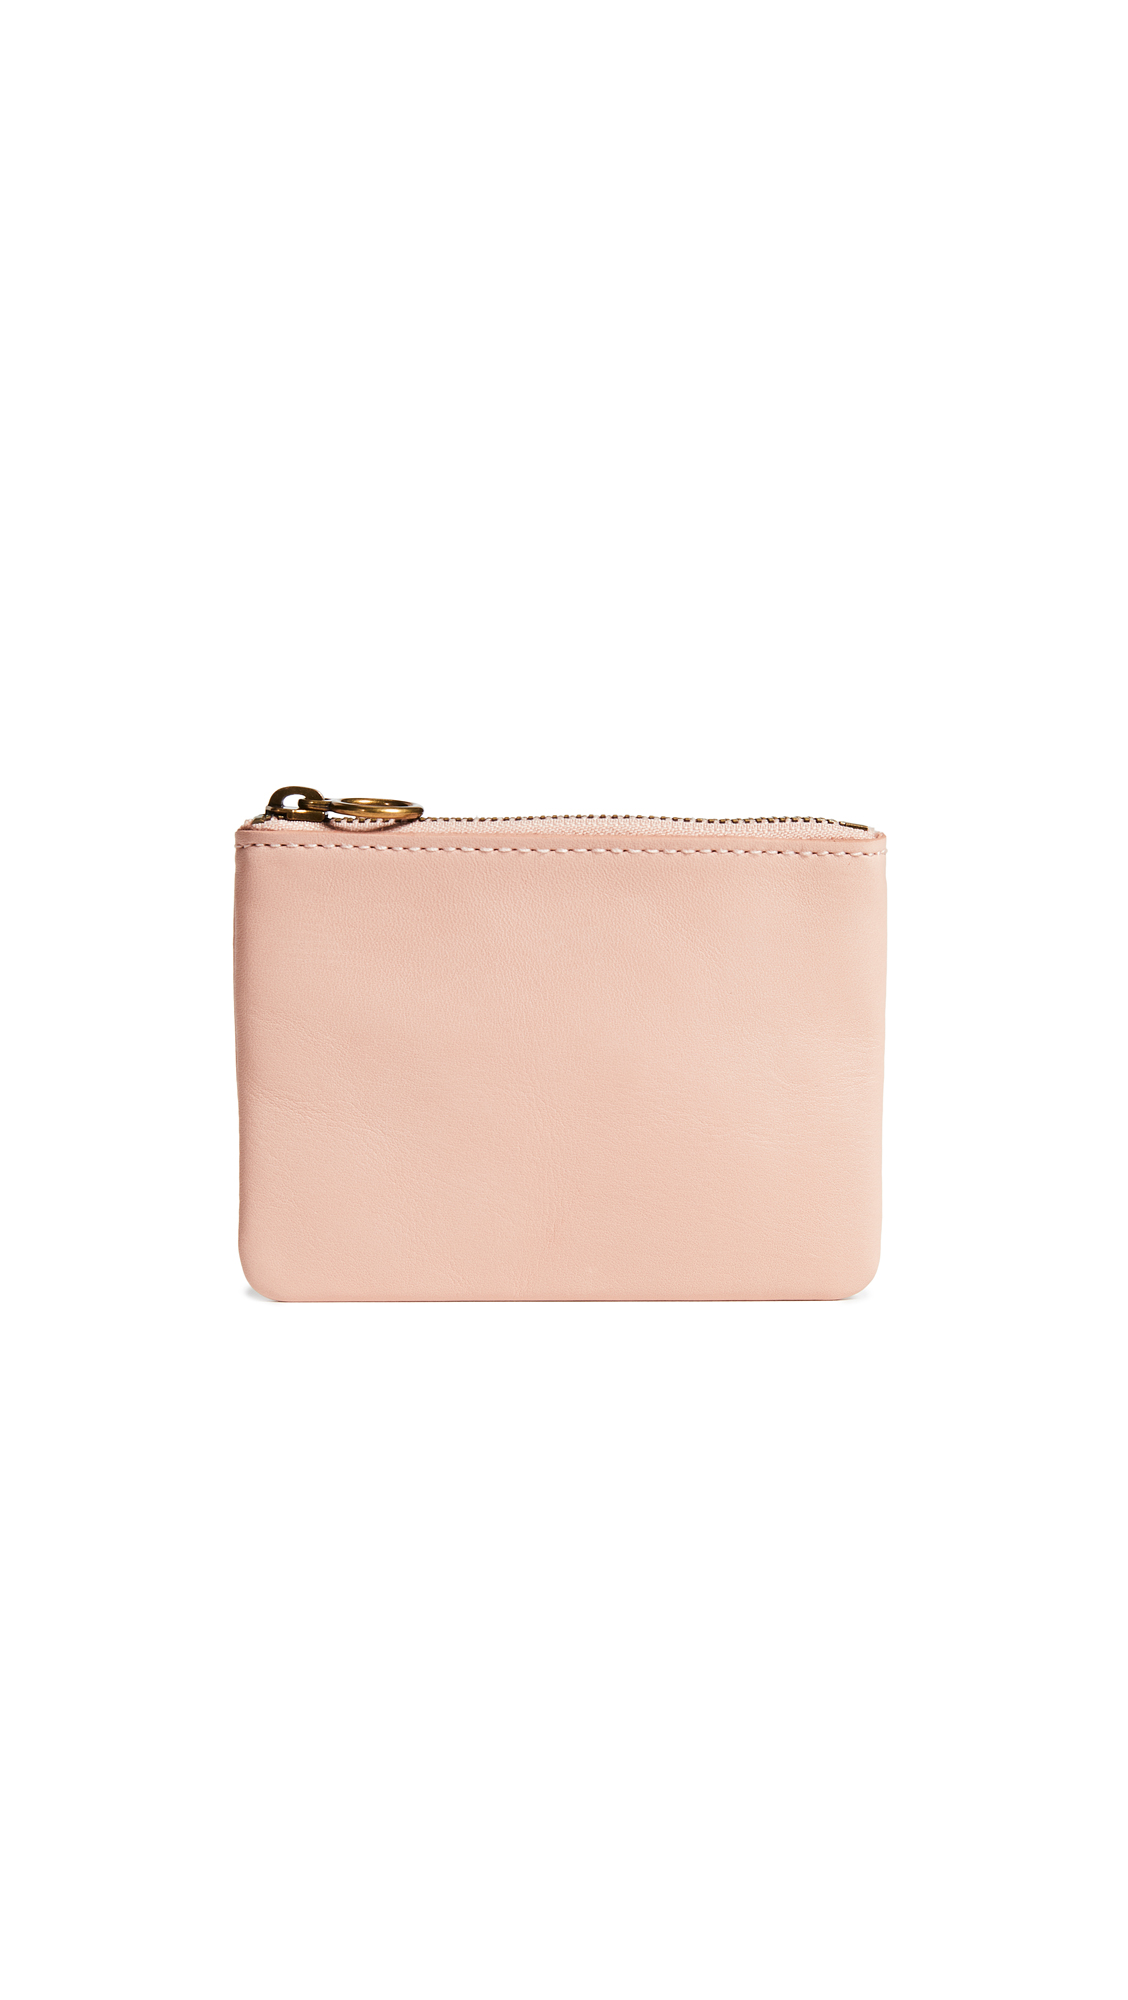 Madewell Leather Pouch Wallet In Sheer Pink